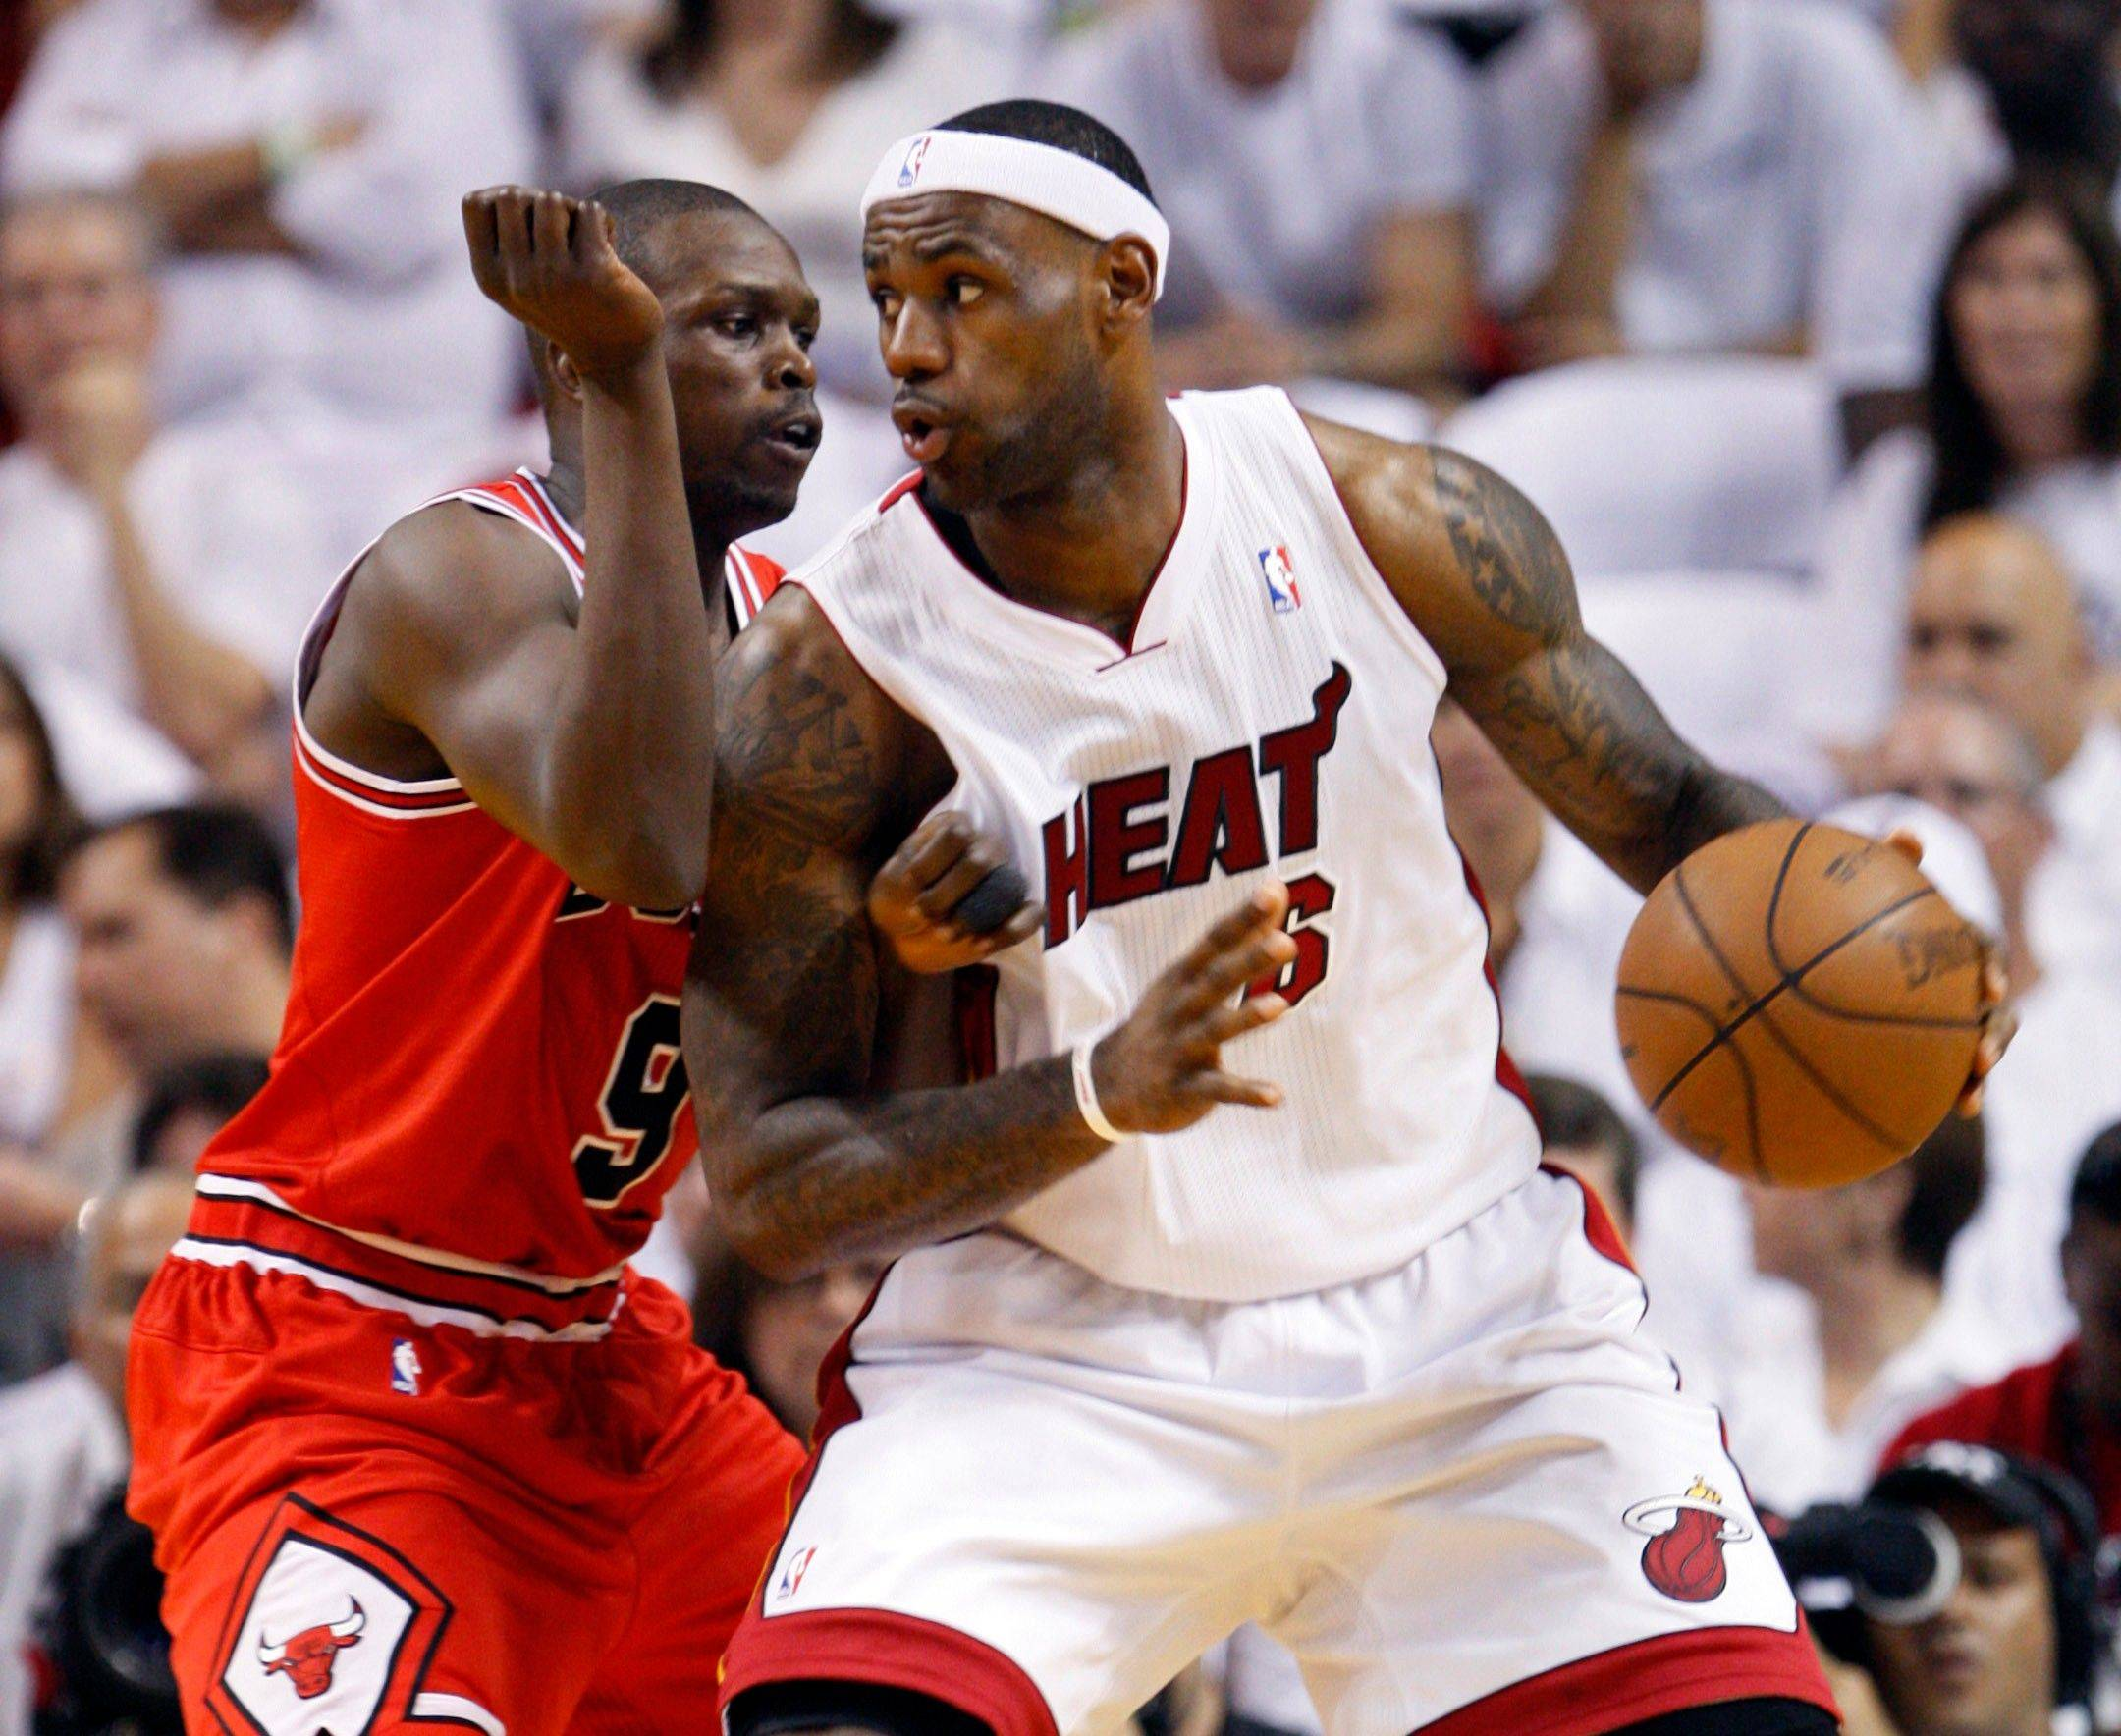 Miami Heat's LeBron James (6) backs down Chicago Bulls Luol Deng (9) during Game 3 of the NBA Eastern Conference finals basketball series in Miami, Sunday, May 22, 2011.